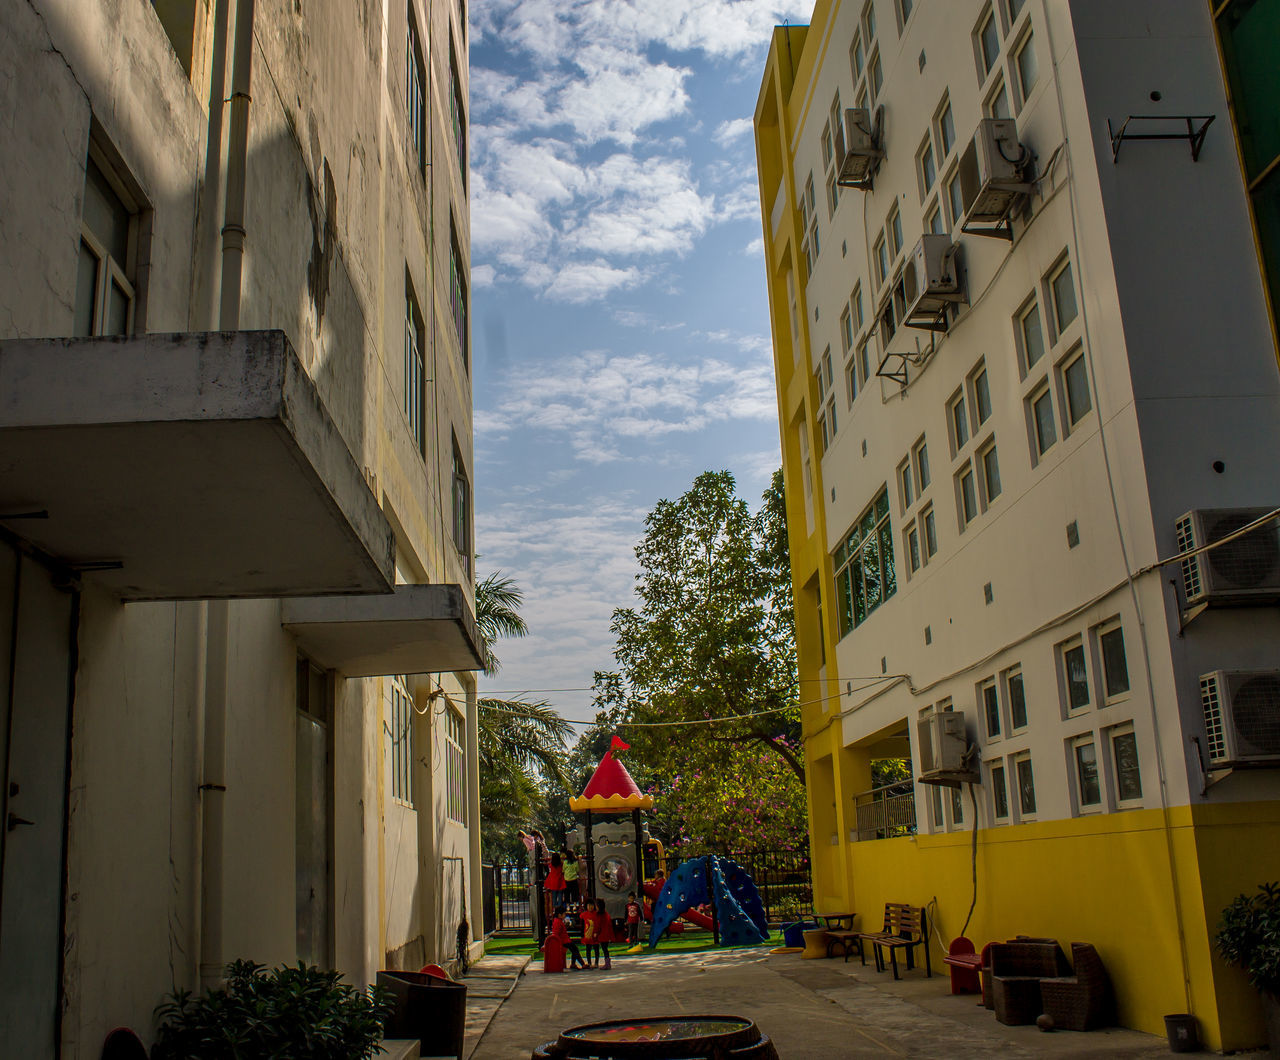 Architecture Building Exterior Built Structure China School City Cloudy Day Day No People Outdoors Playground Equipment School Sky Two Buildings Zhuhai